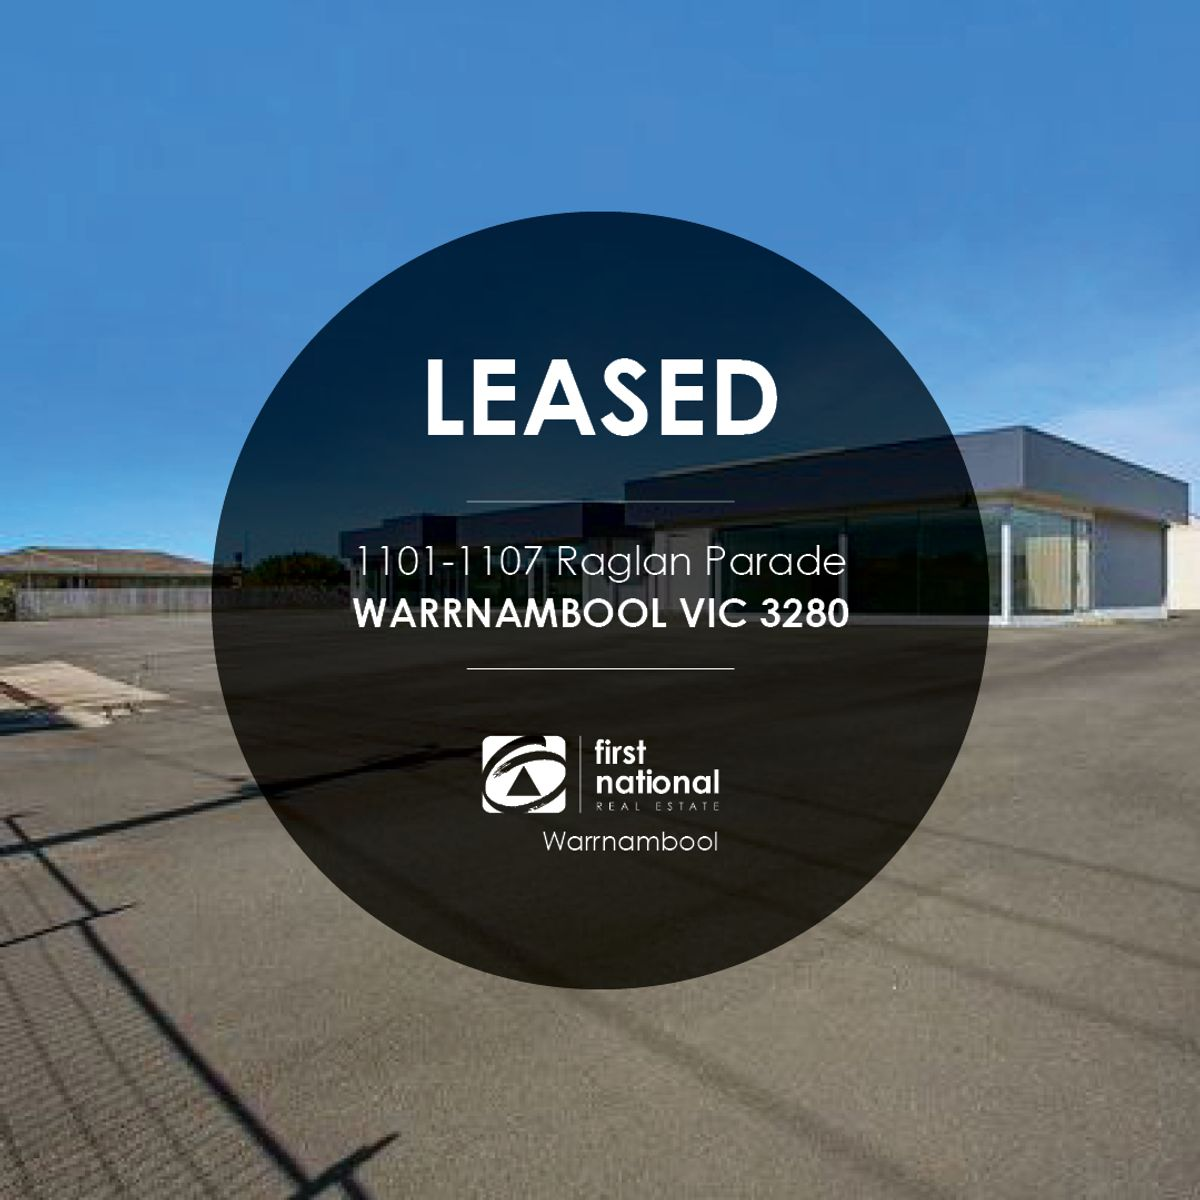 1101-1107 Raglan Parade, Warrnambool, VIC 3280